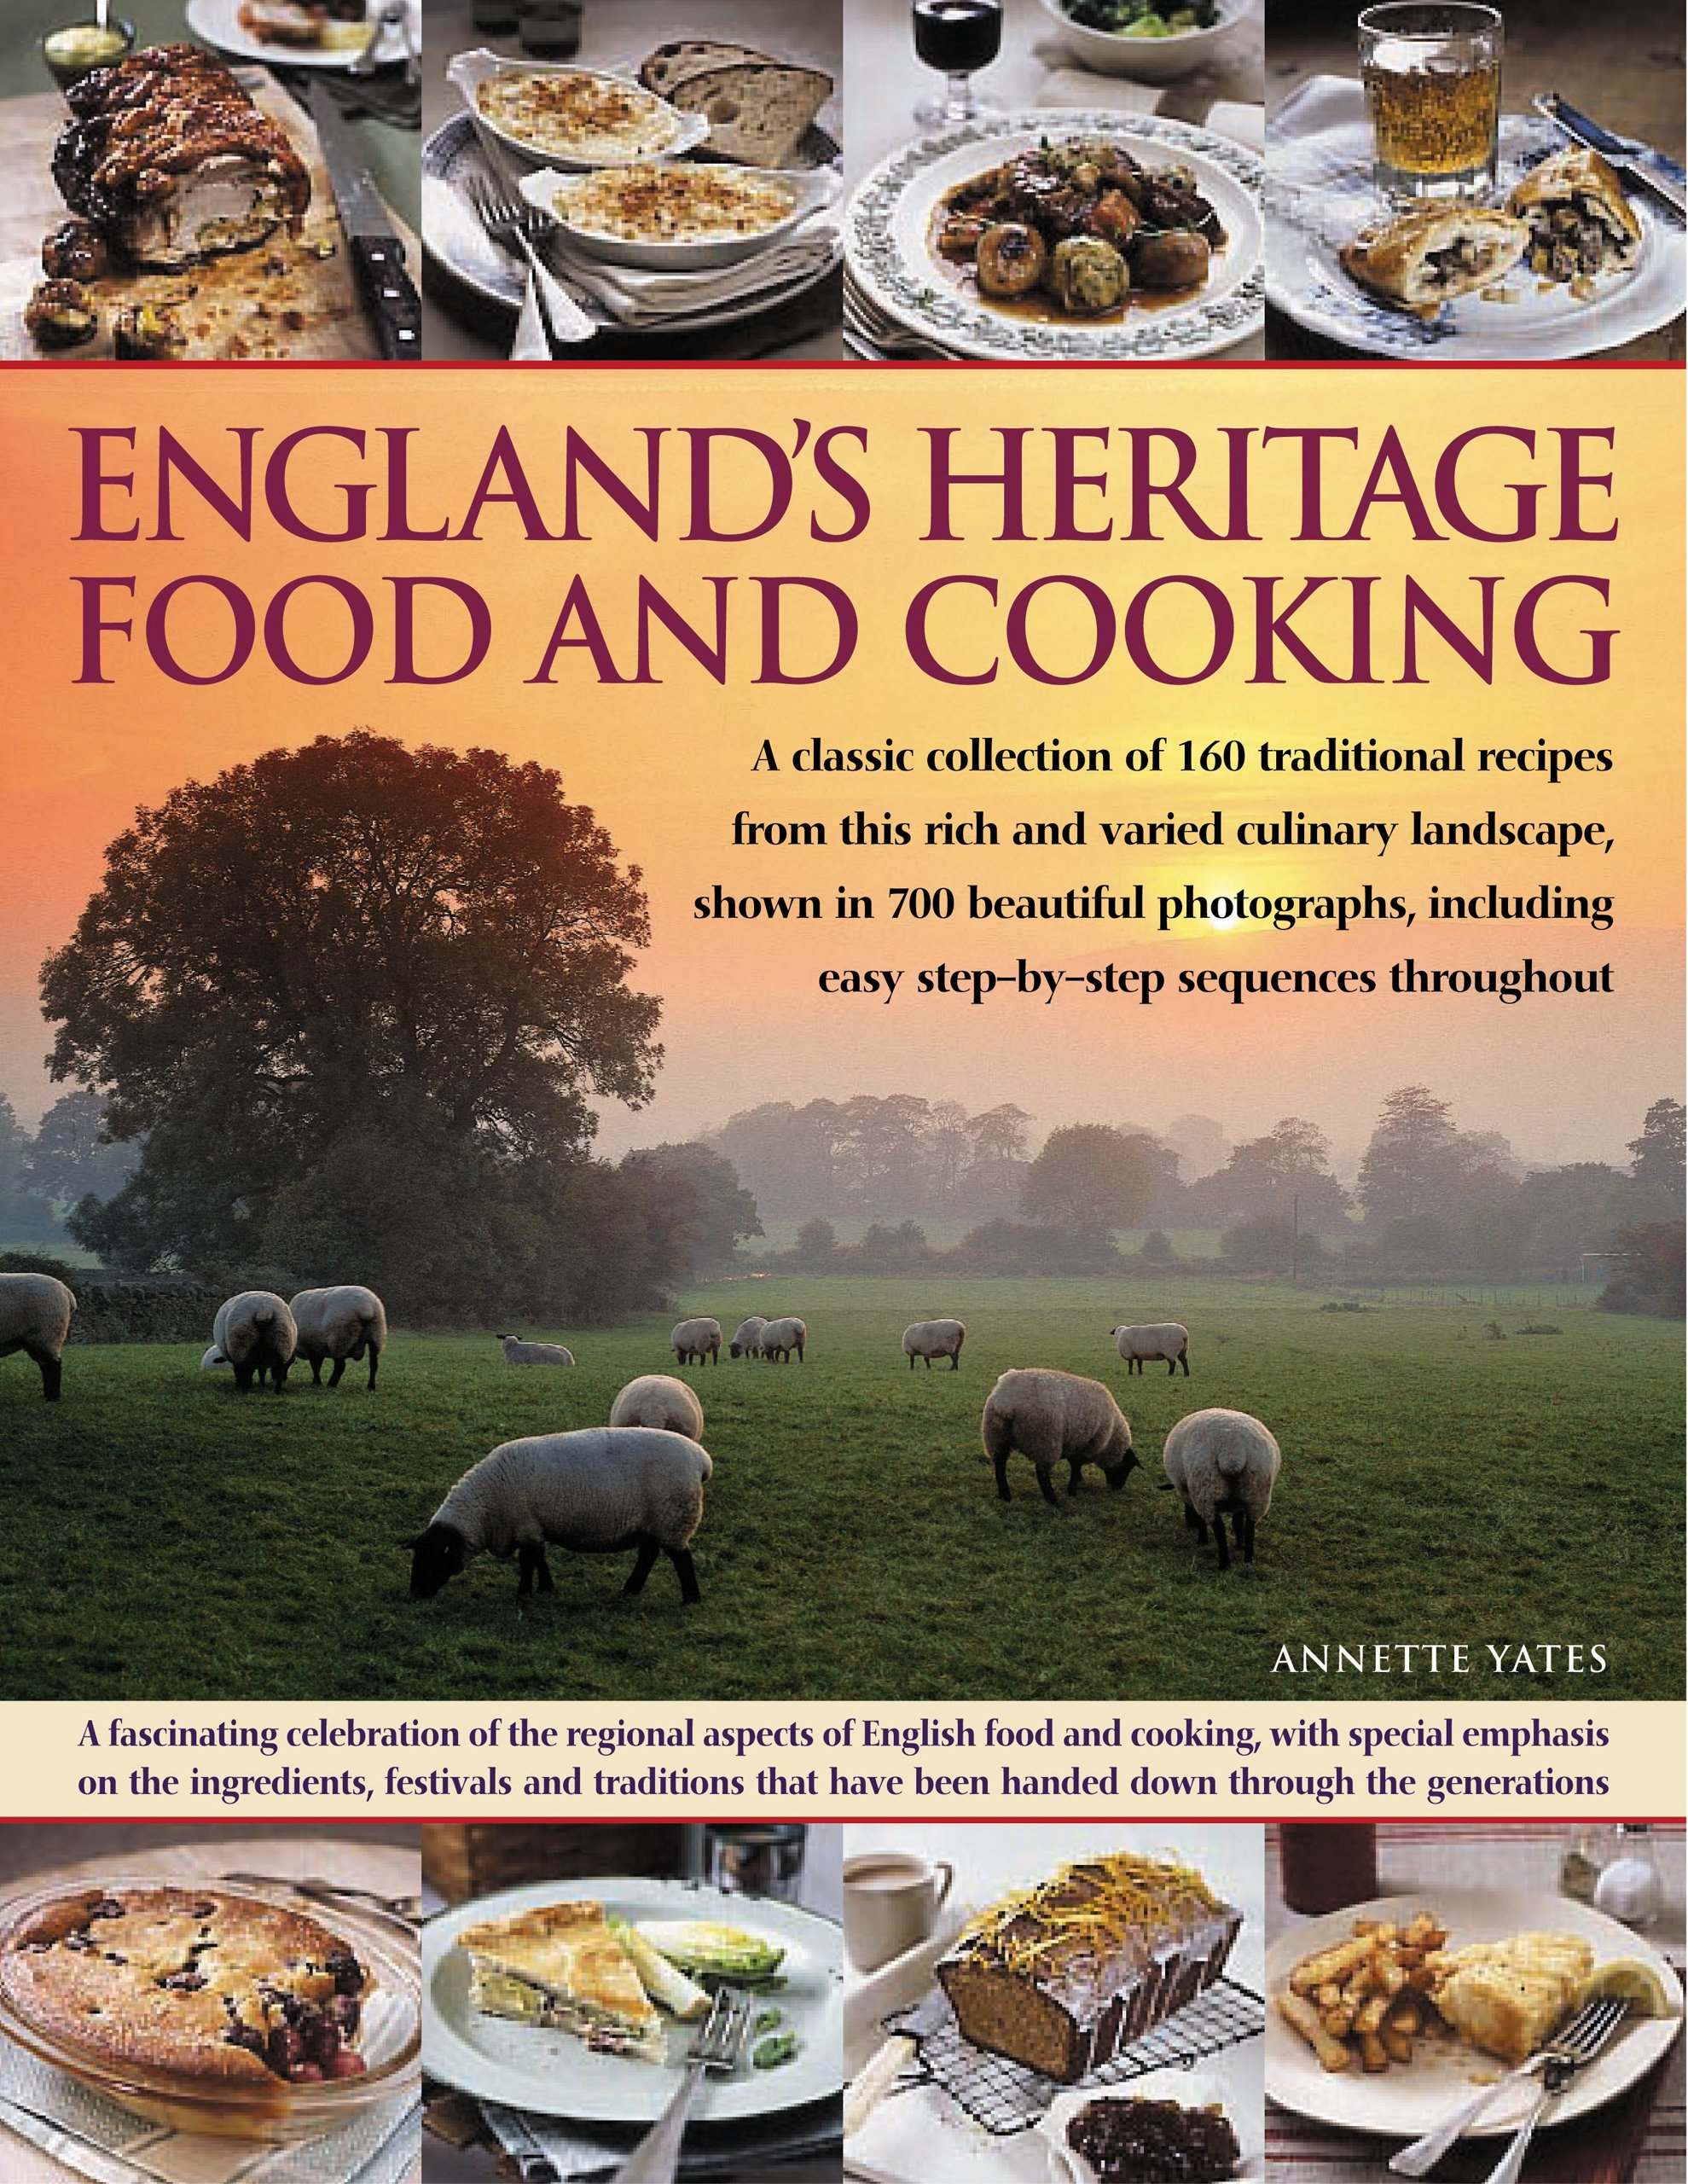 Englands heritage food and cooking a classic collection of 160 englands heritage food and cooking a classic collection of 160 traditional recipes from this rich and varied culinary landscape shown in 750 beautiful forumfinder Image collections